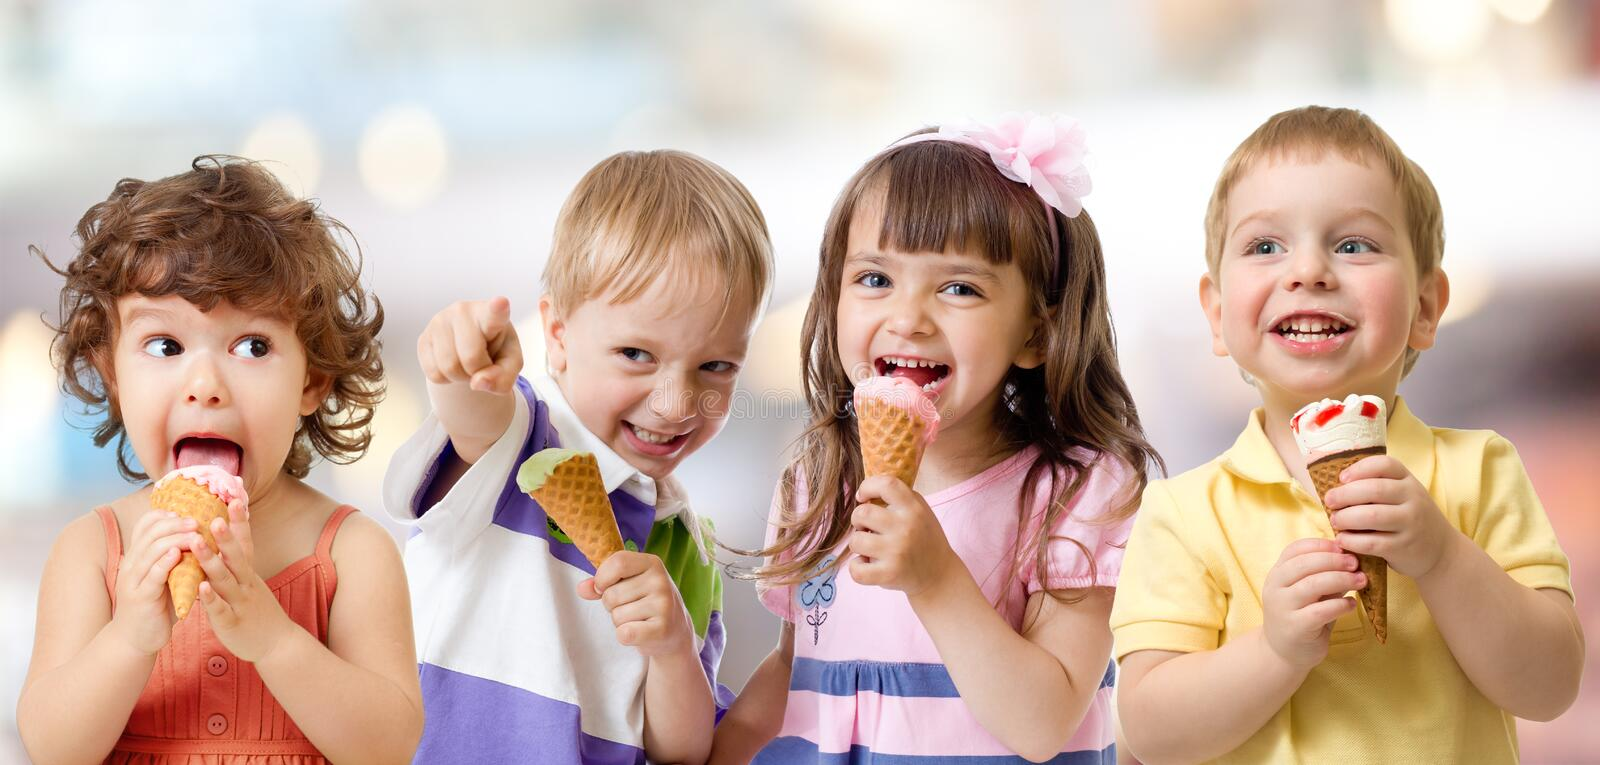 Children or kids group eating ice cream. Funny children group eating ice cream on party stock photos